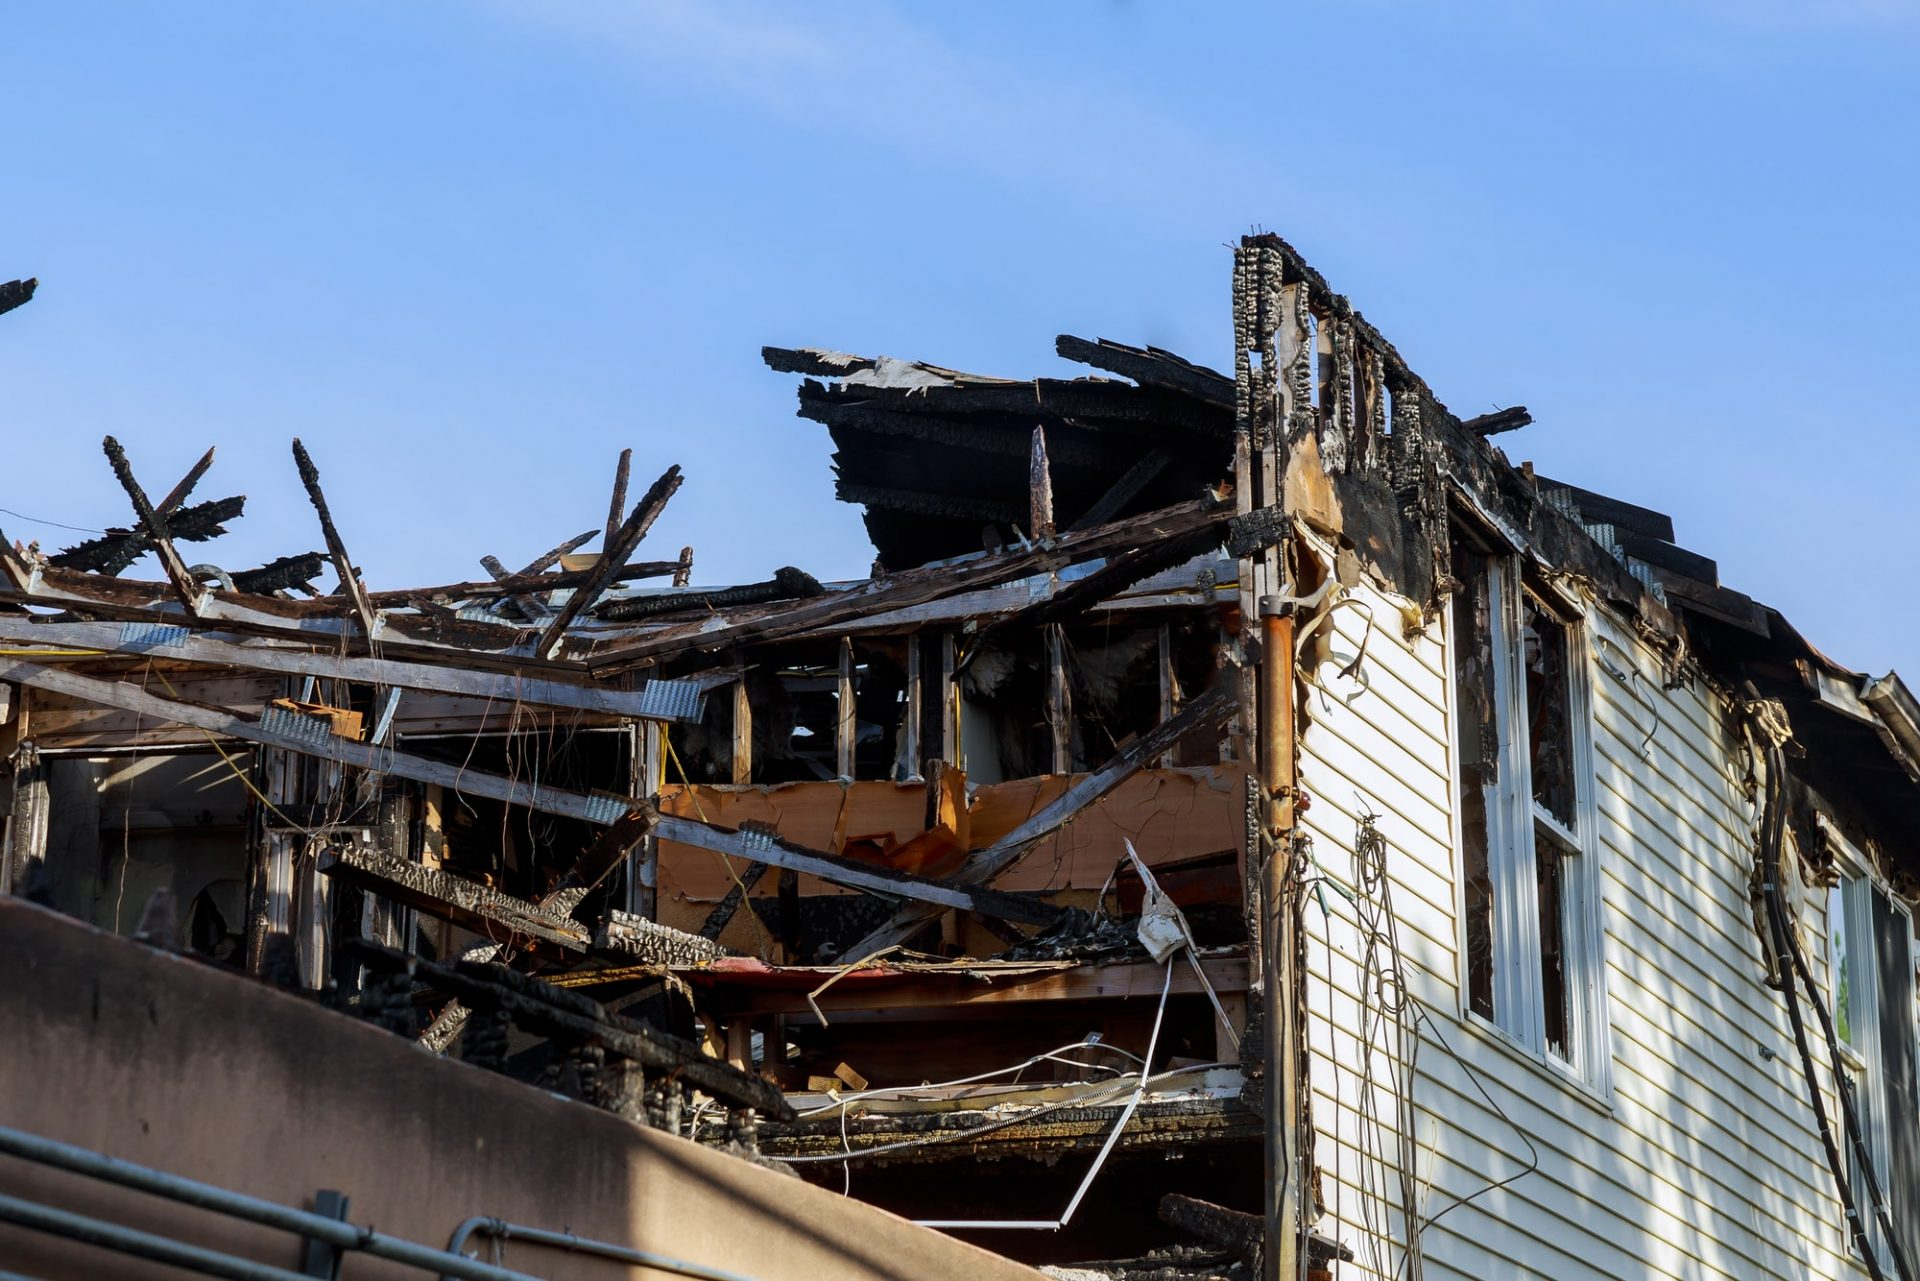 Ruins of house after big disaster - fire day the fire House in the city